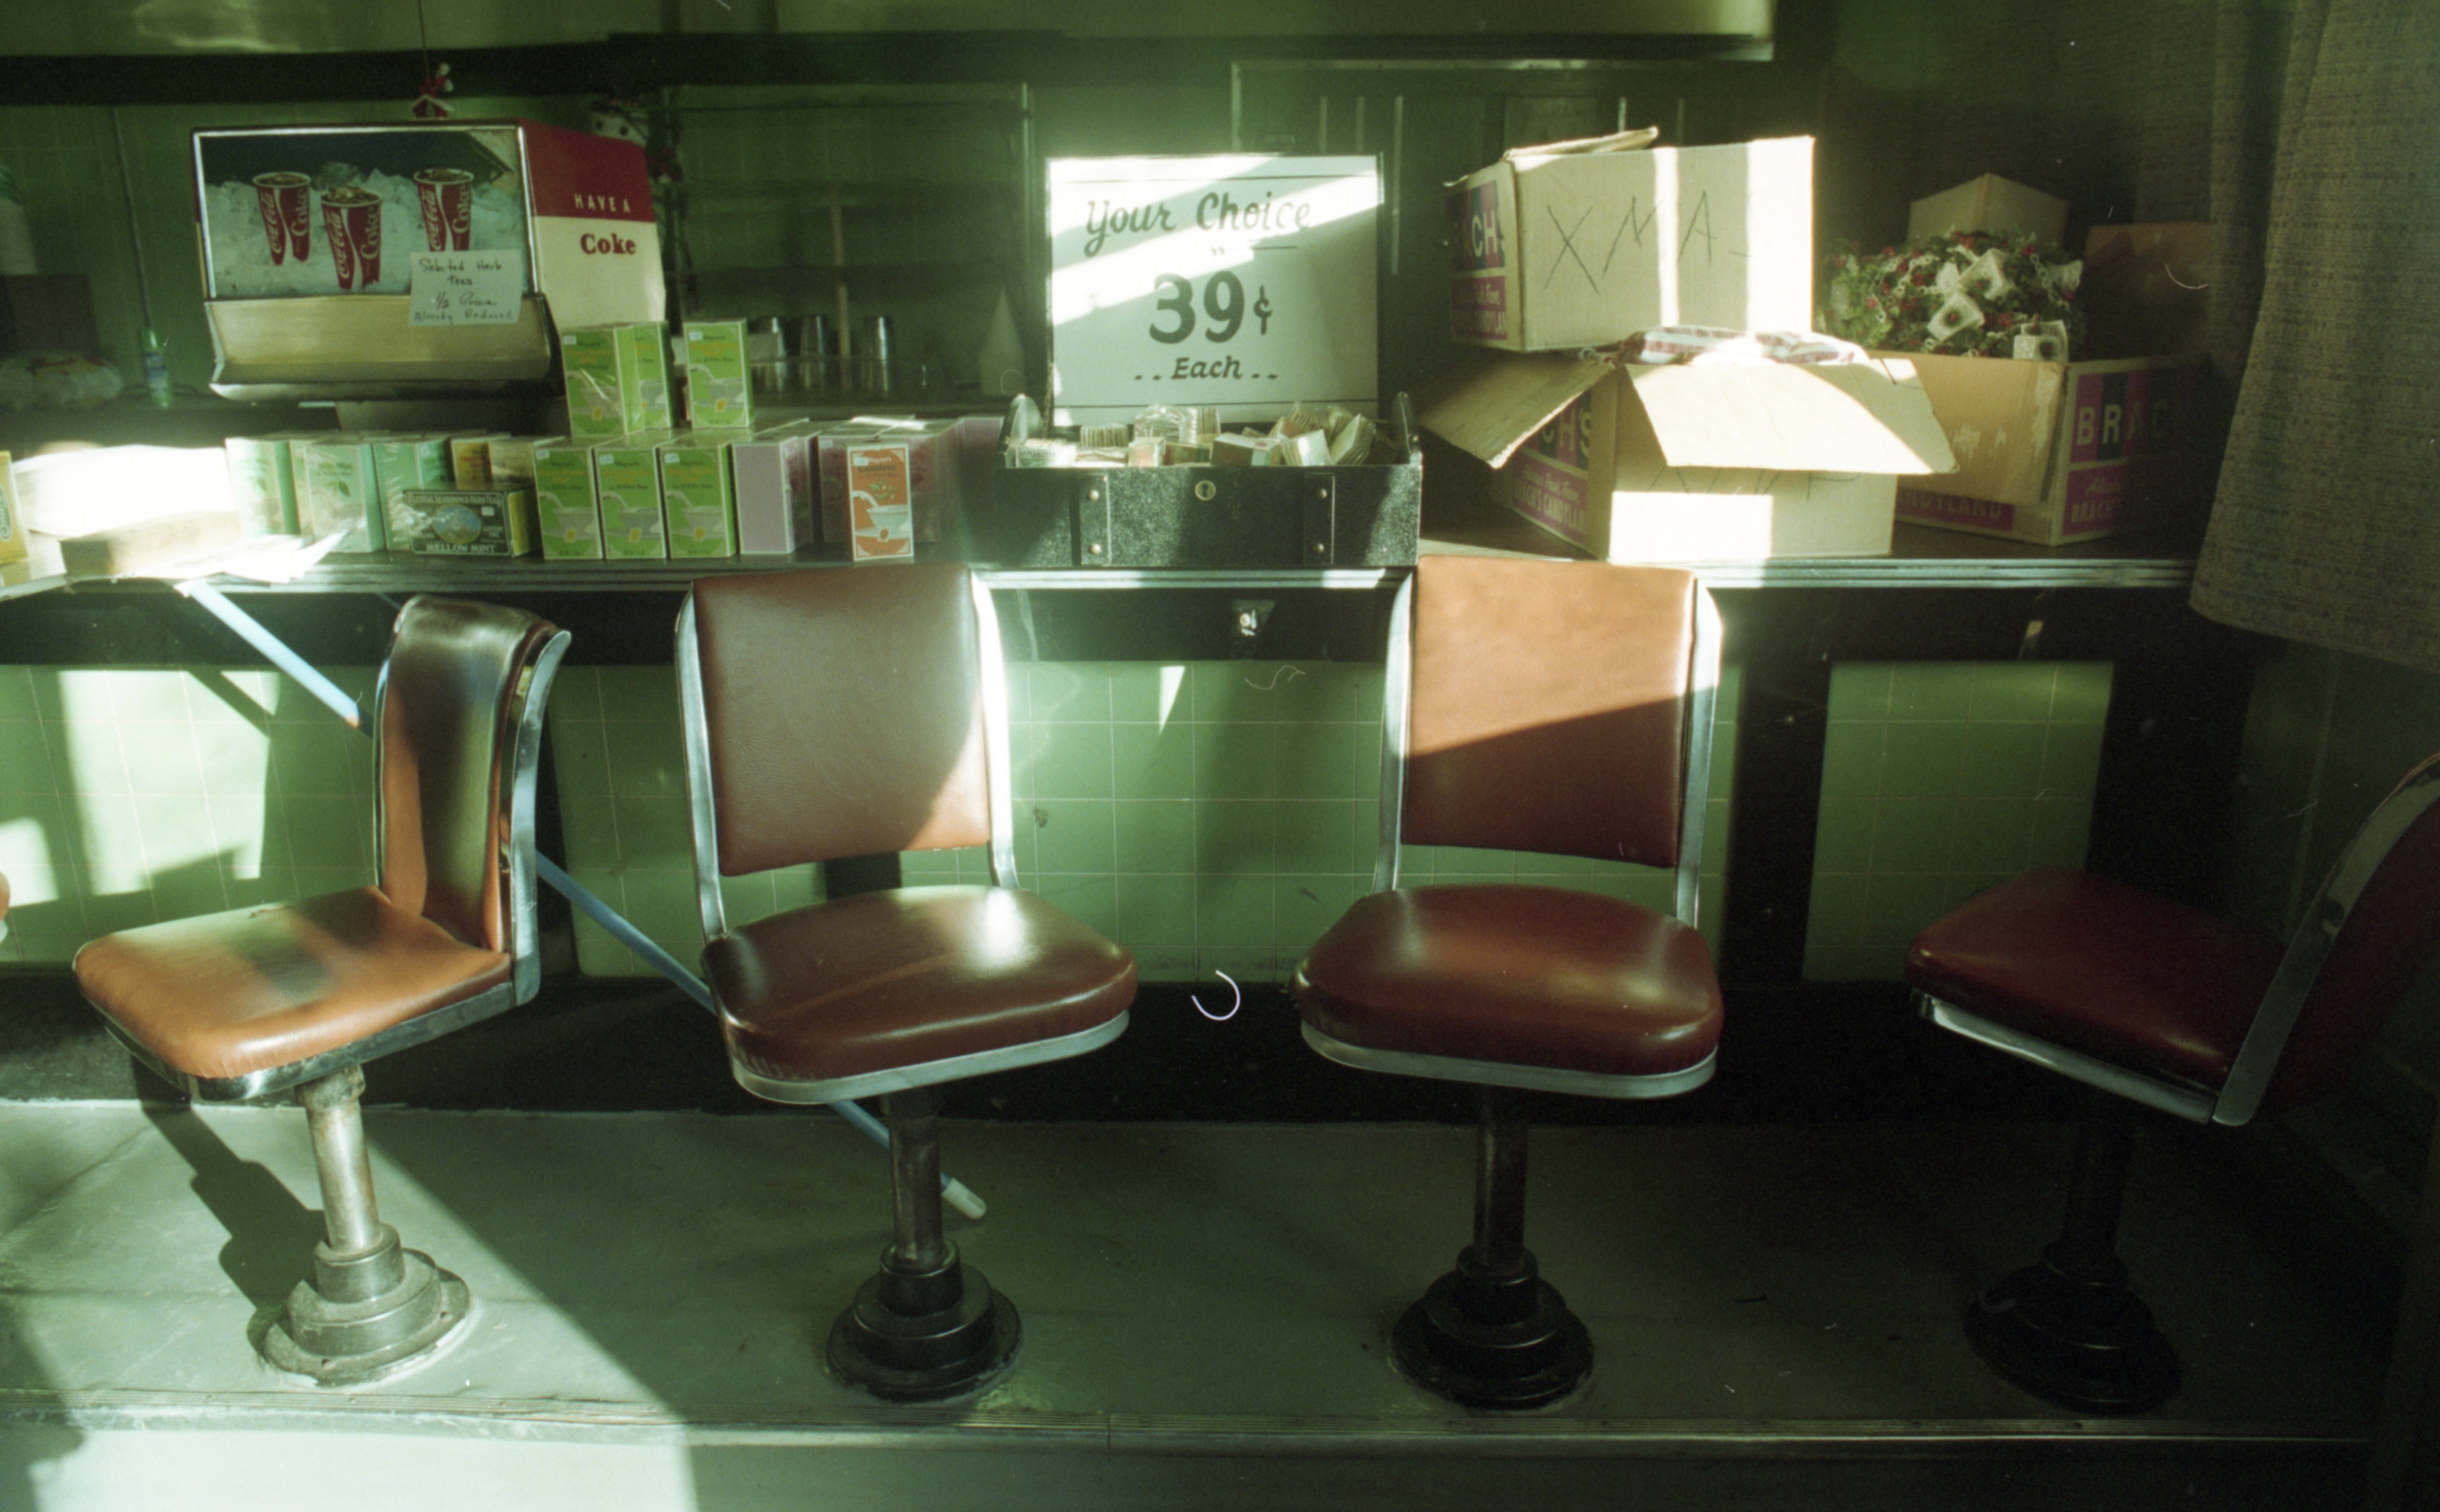 Interior Of Drake's Sandwich Shop, December 29, 1993 image